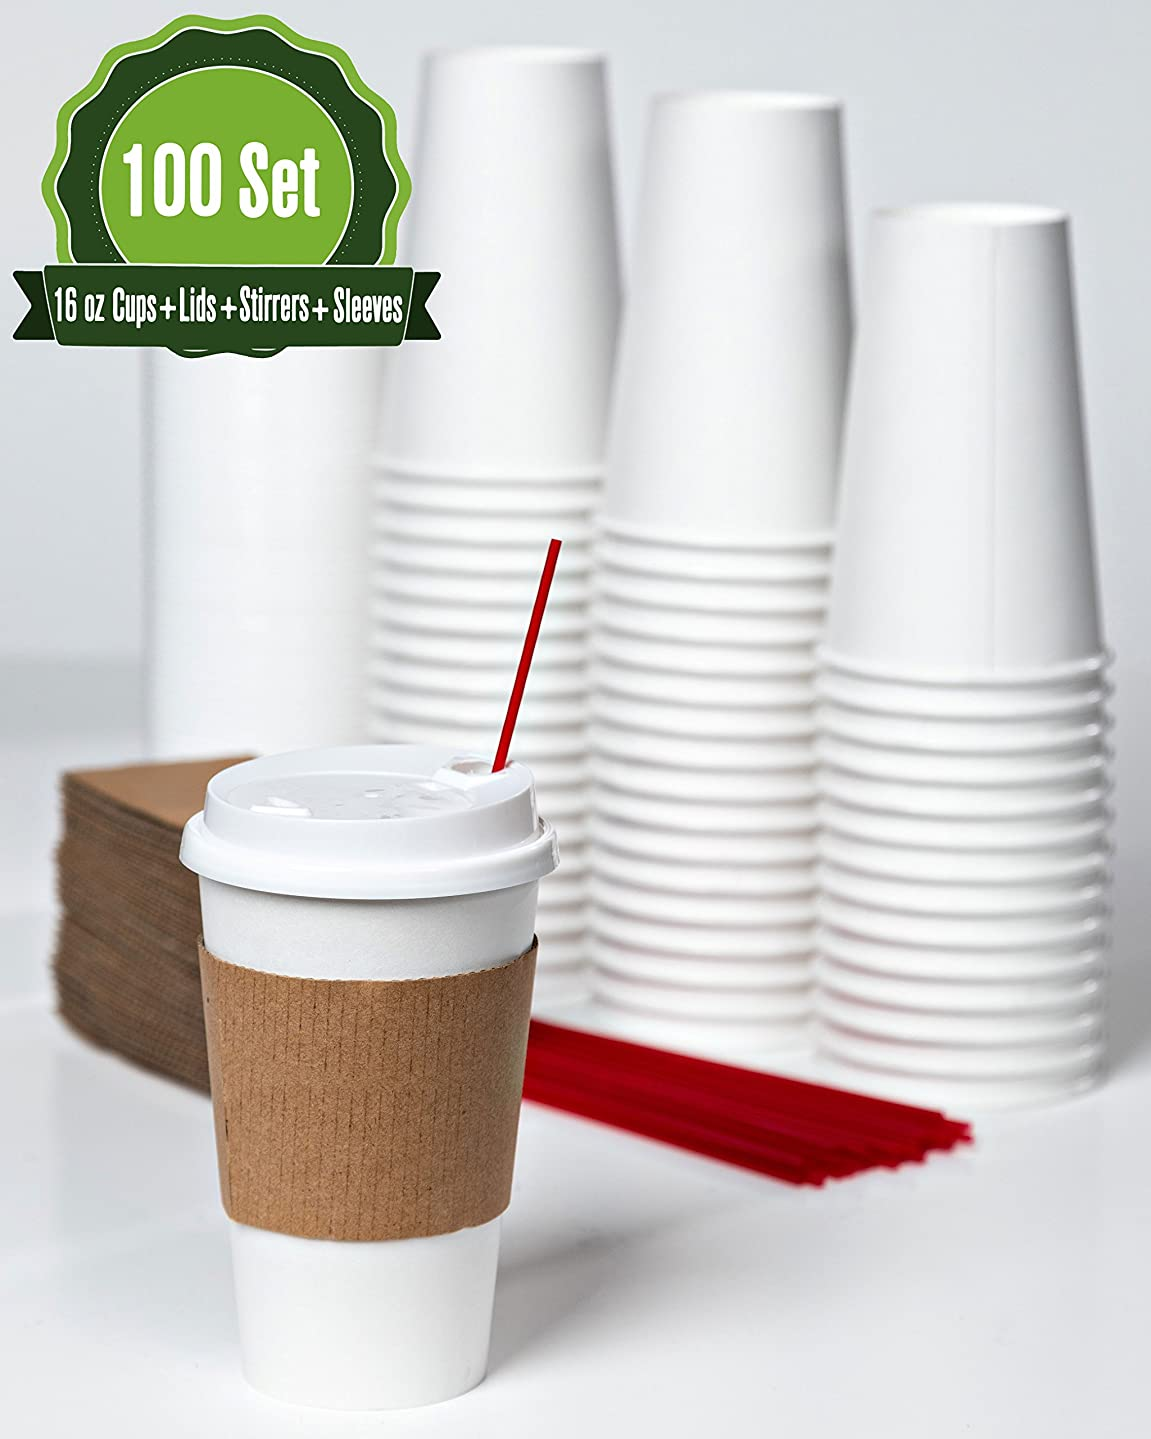 16oz- 100 Sets White Paper Coffee Cups with Lids, Sleeves, and Stirrers